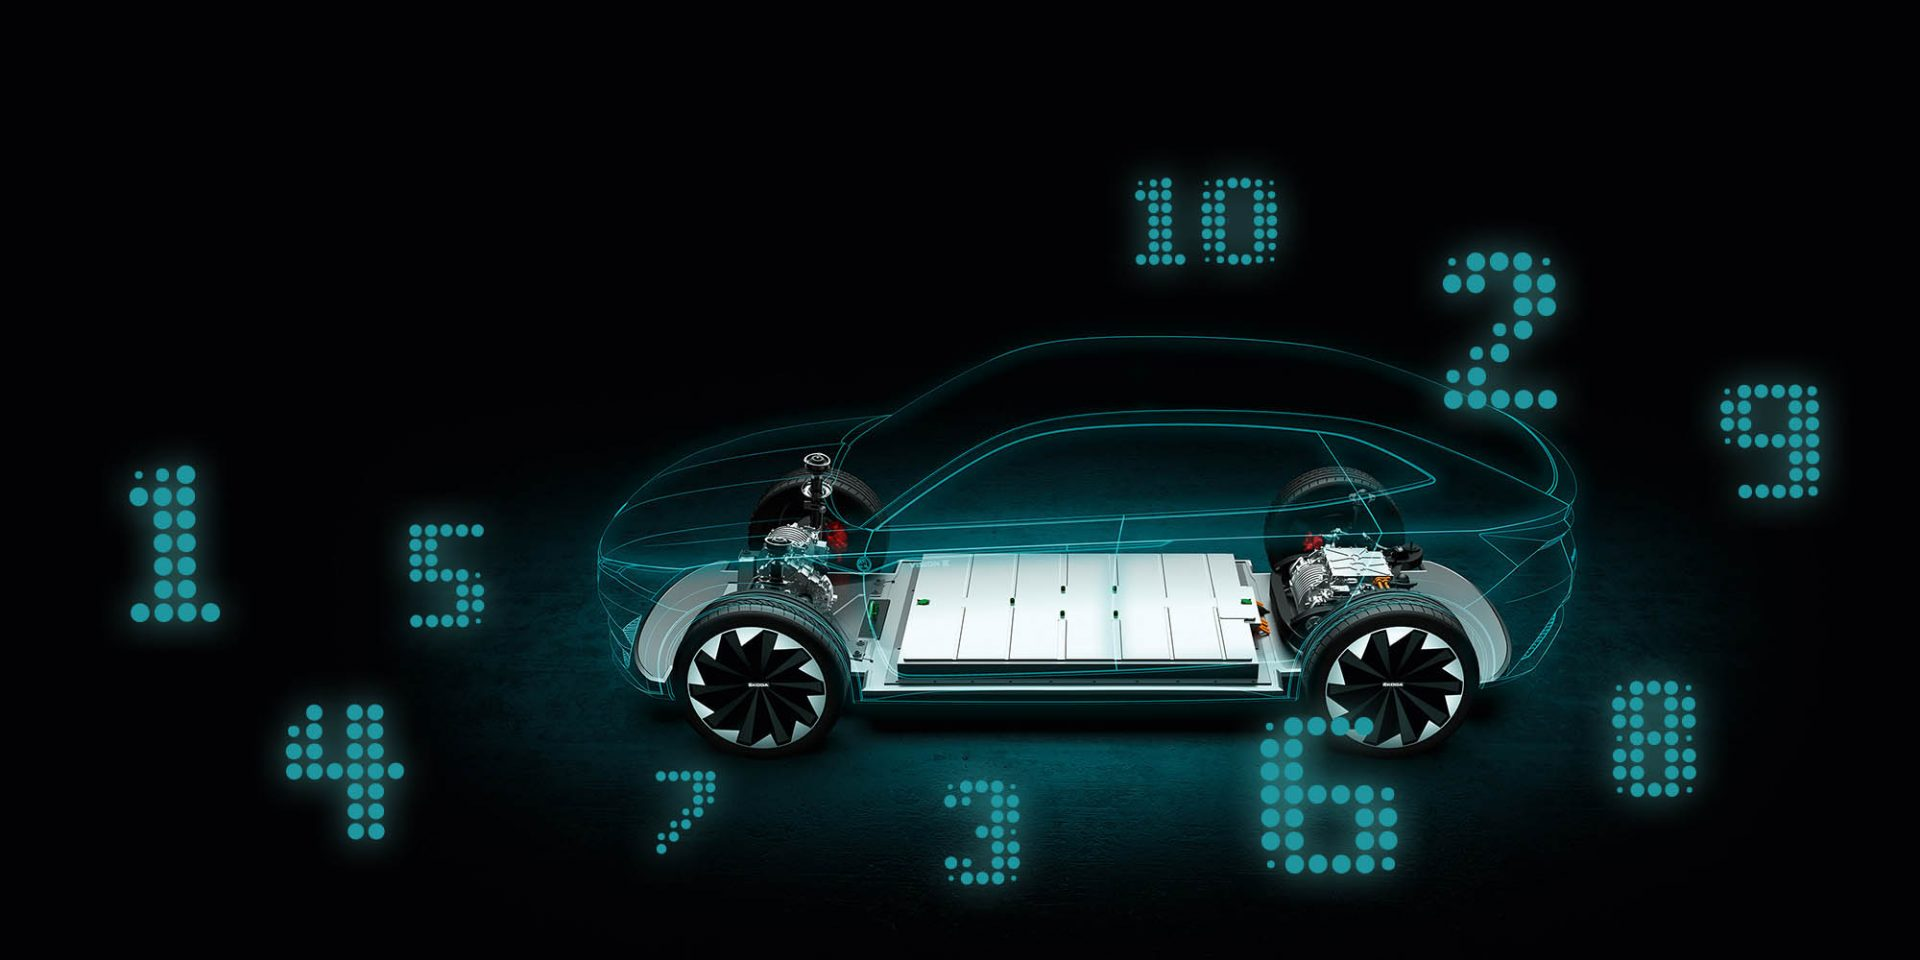 10 Questions And Answers About Electric Cars Koda Storyboard Running Power To A Garage Or Garden Pond Learn Code